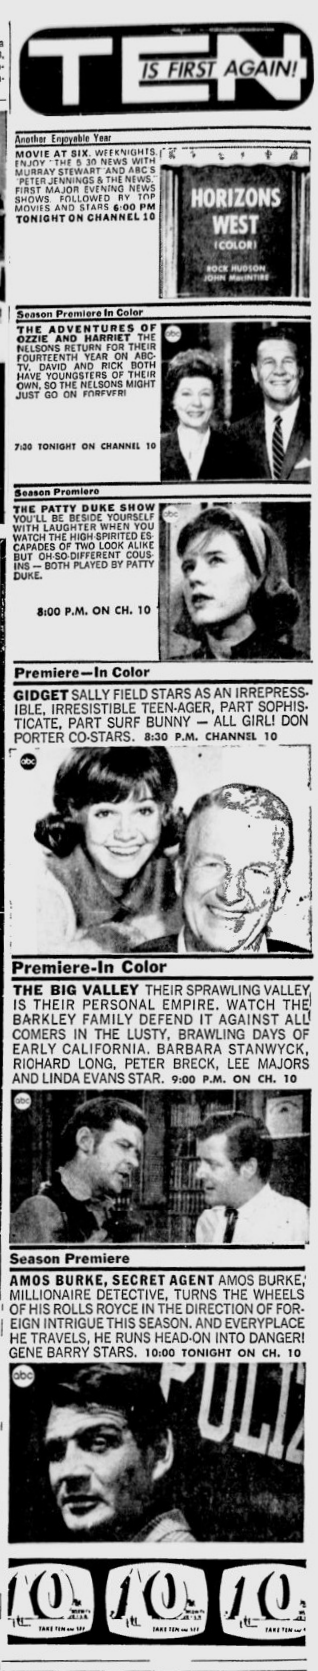 1965-09-15-wlbw-abc-shows